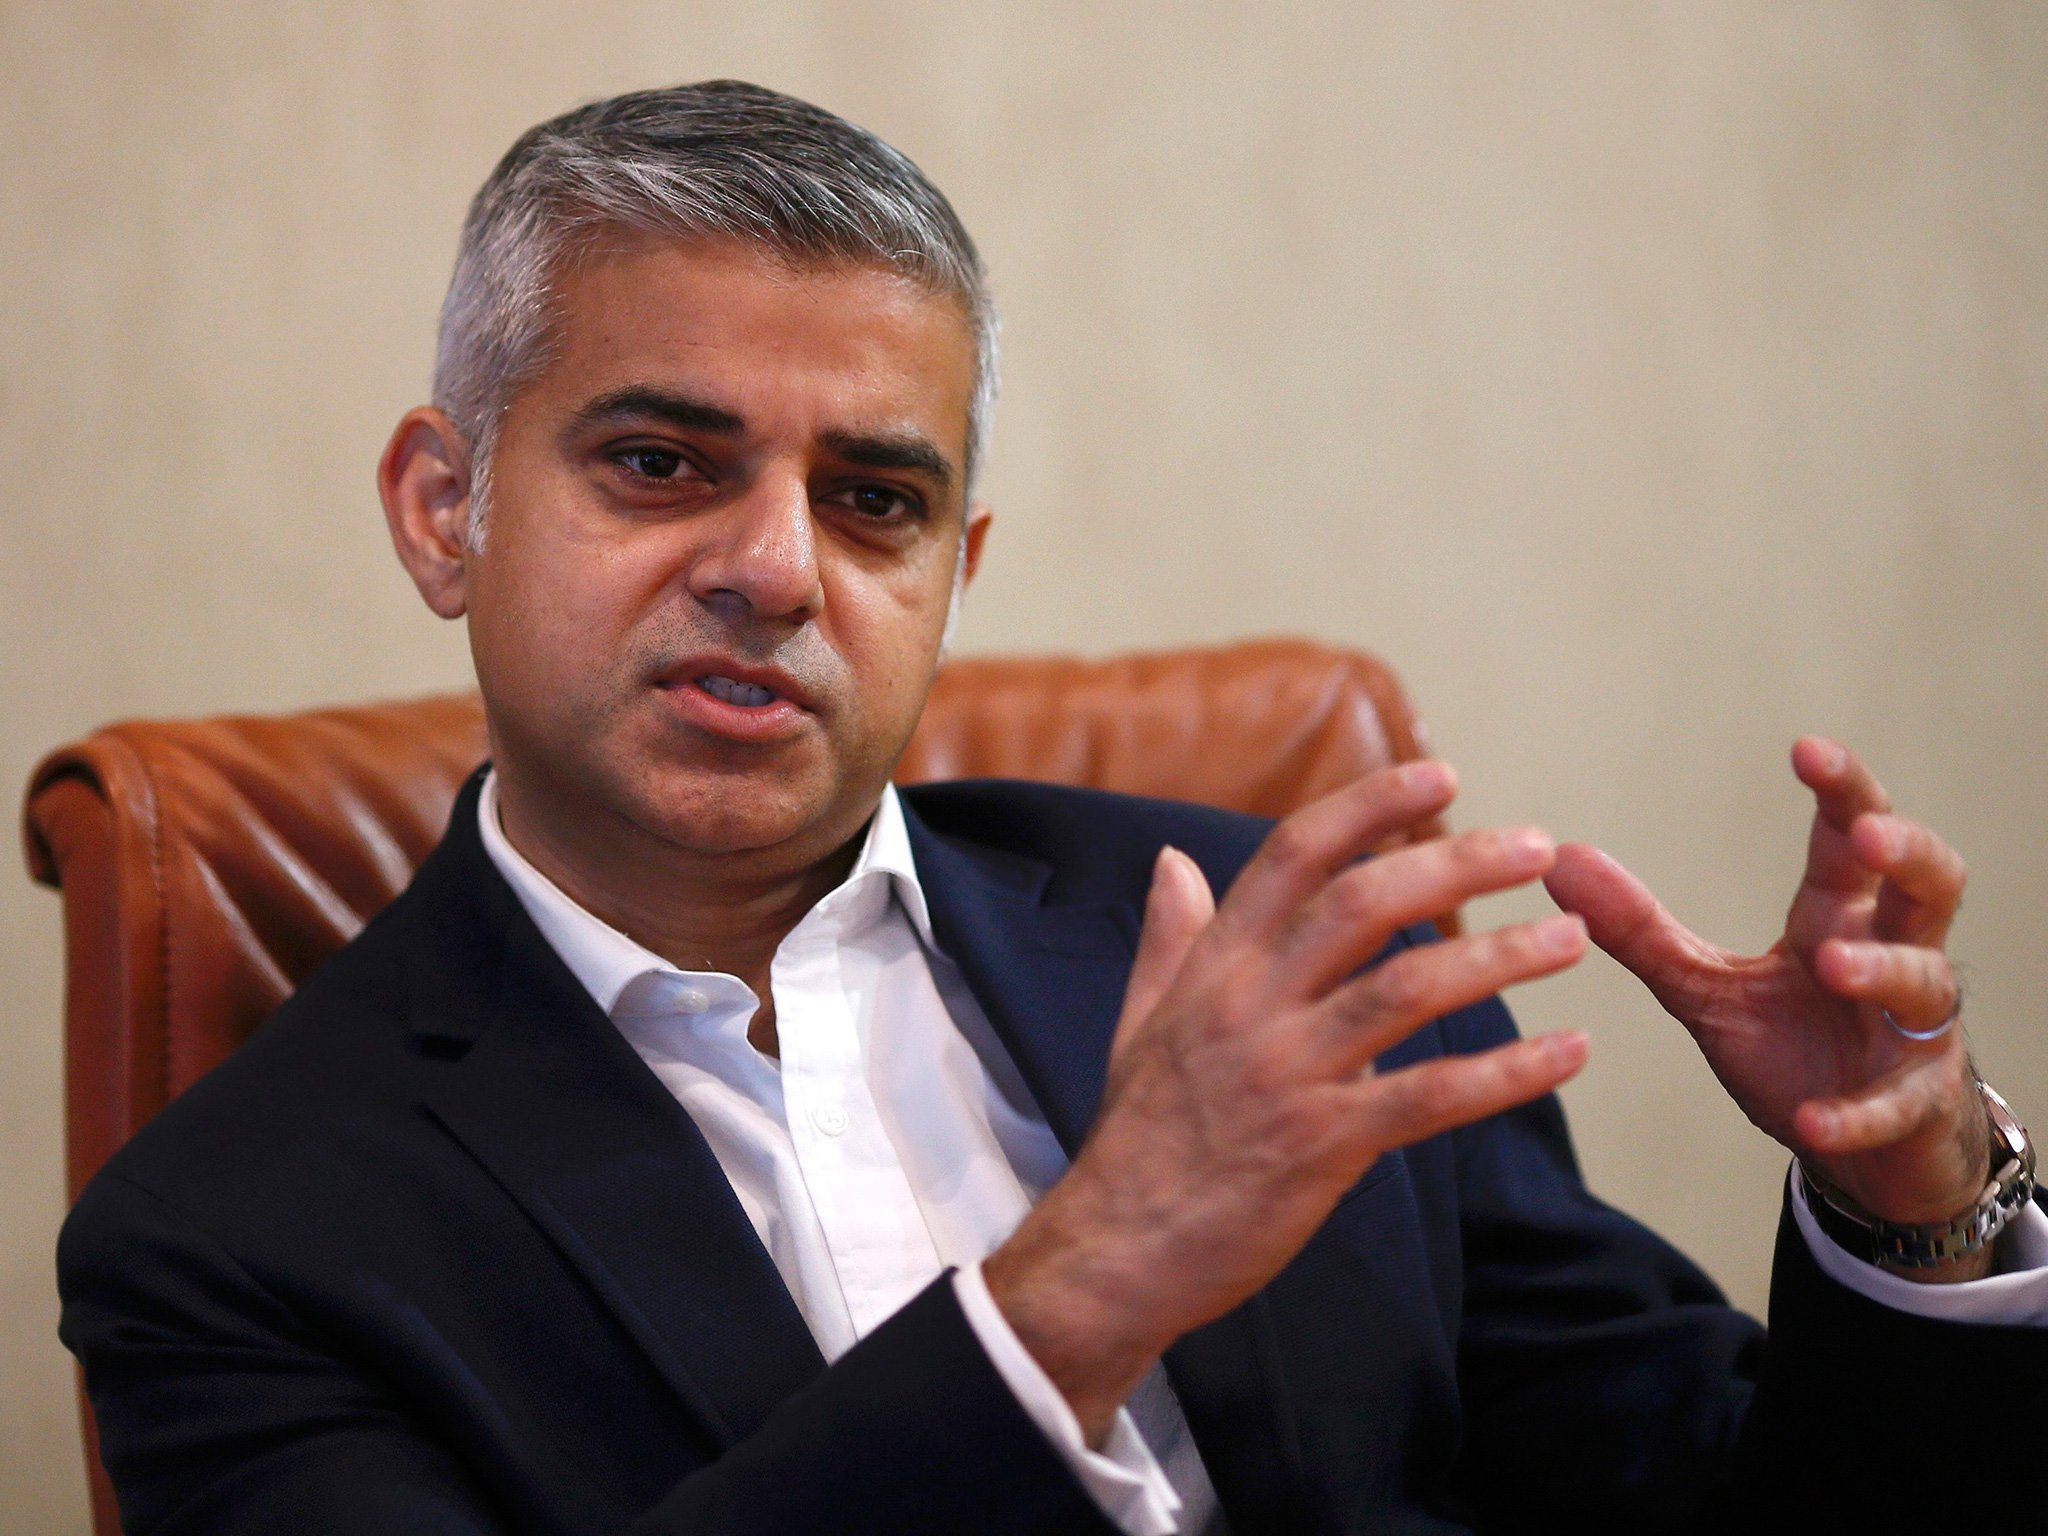 Child Sex Crimes Jump 30 During London Mayors 1st Year